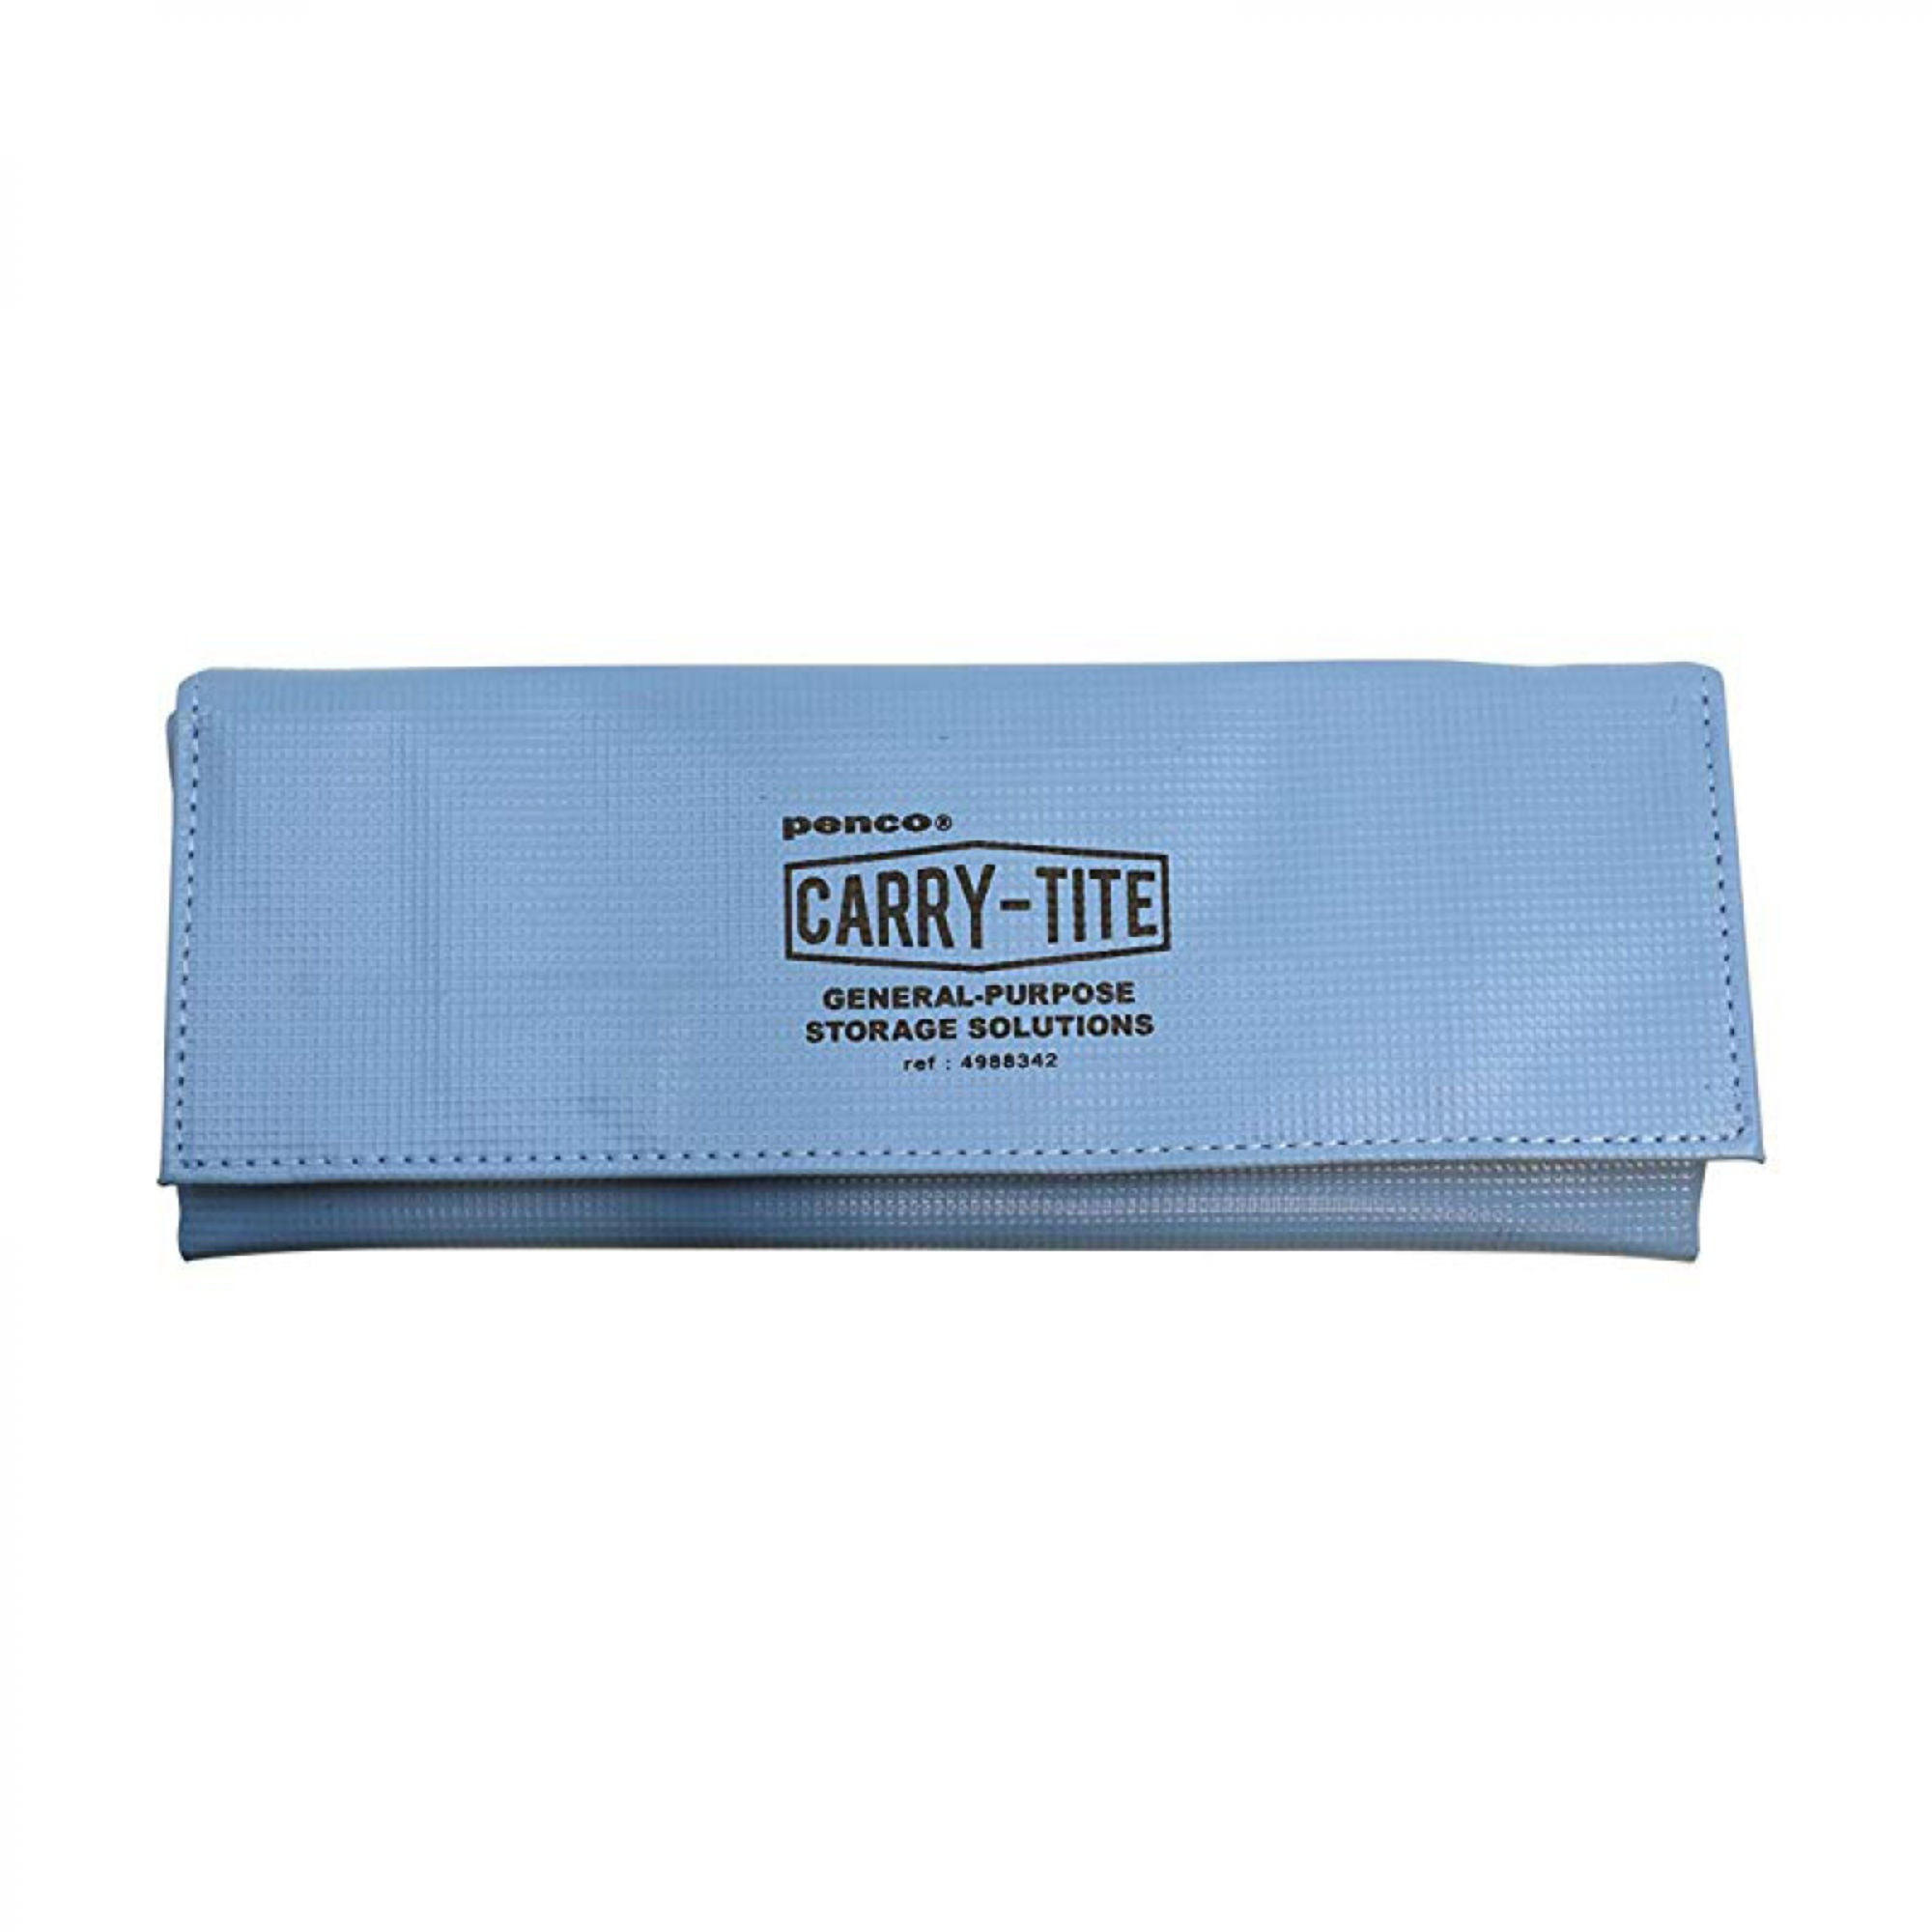 Hightide Penco Carry Tight Case , Light Blue